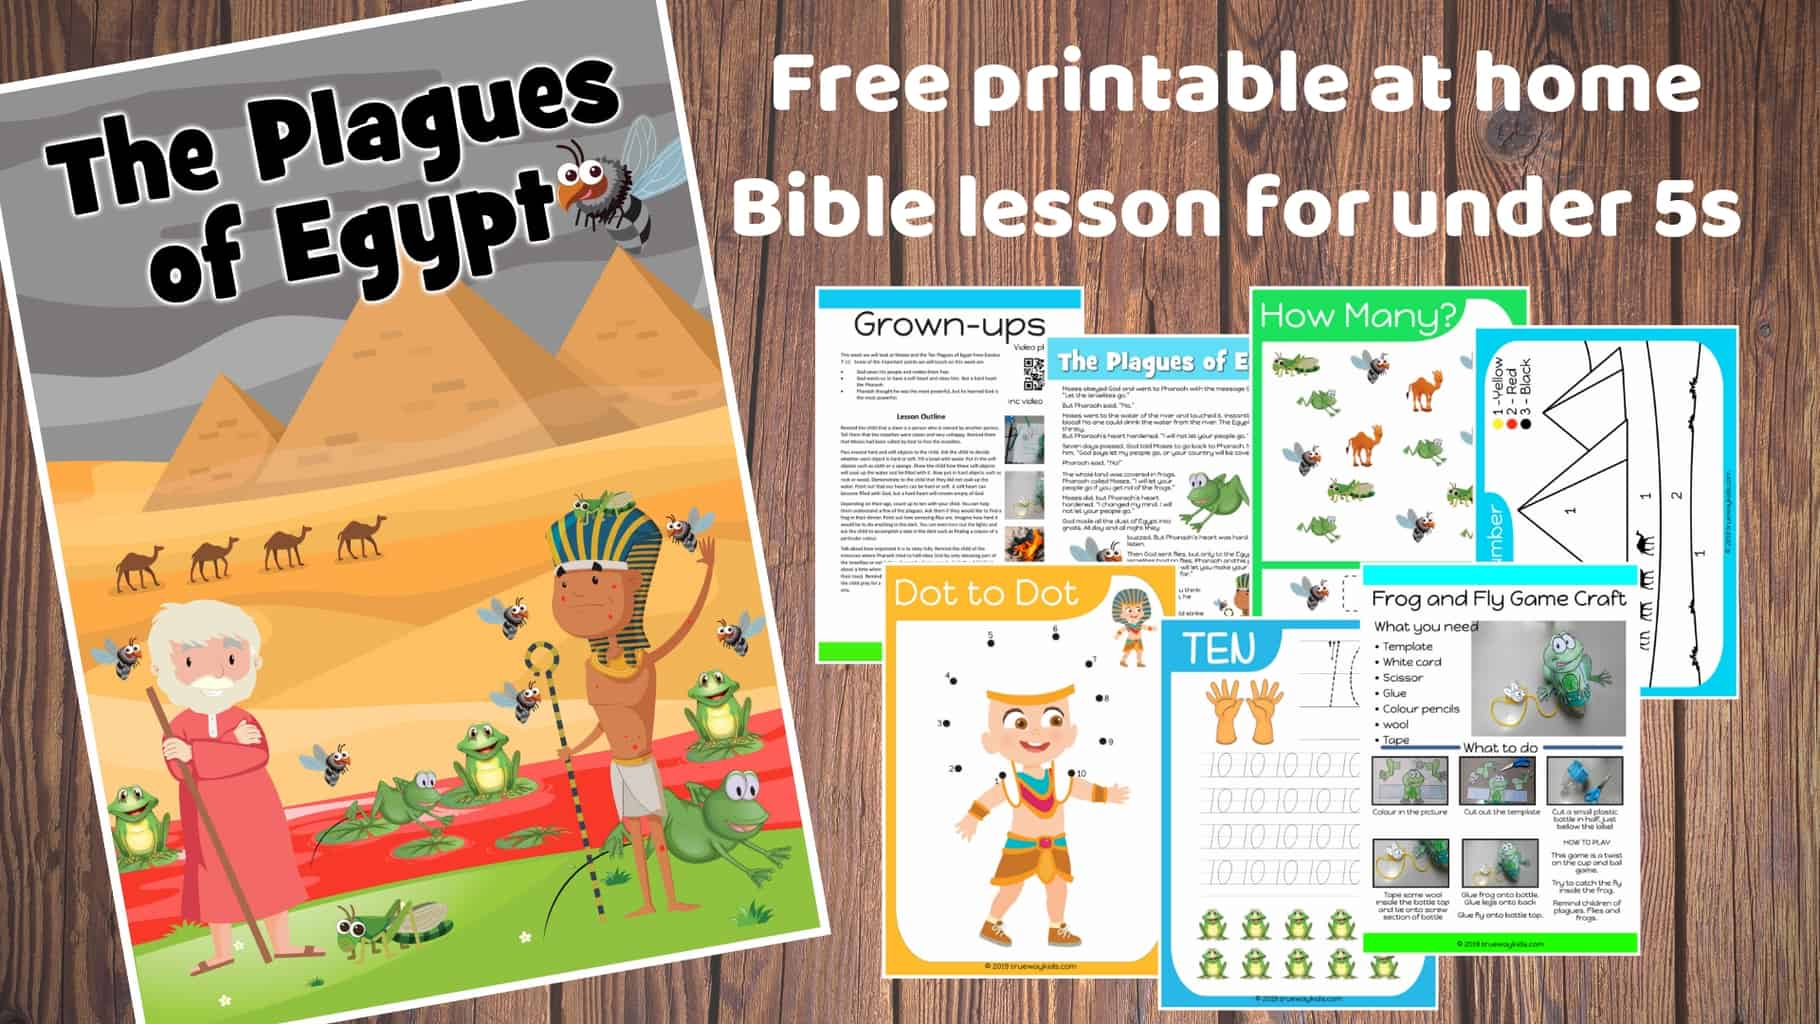 The Plagues Of Egypt Free Bible Lesson For Under 5s